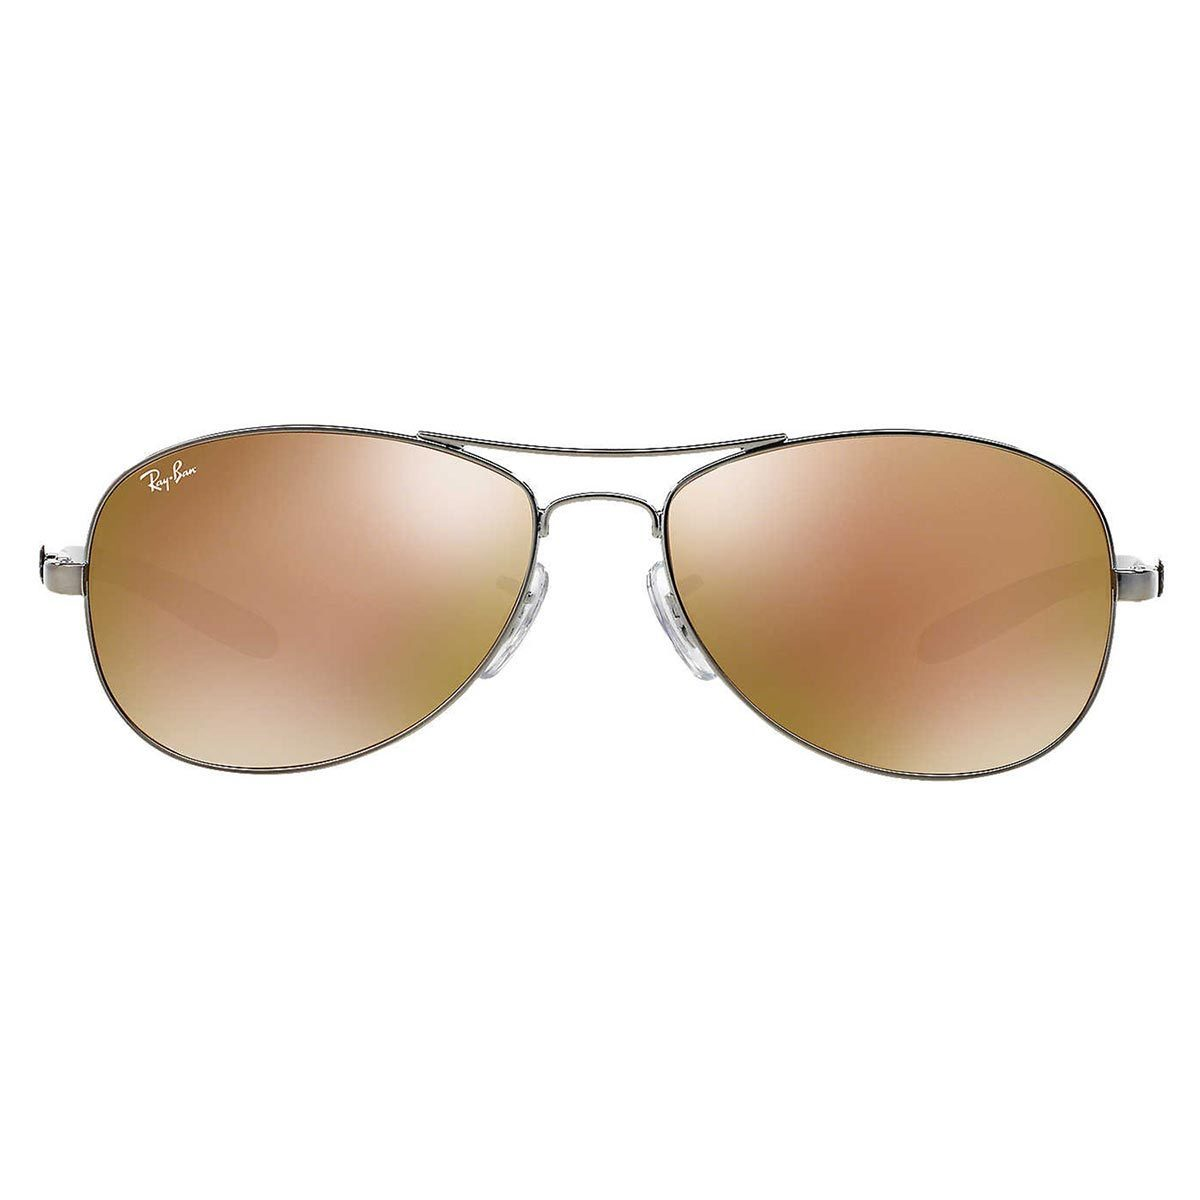 ec3b0052ec Shop Ray-Ban Tech Unisex RB 8301 004 N3 Shiny Gunmetal Carbon Fiber Cockpit  Sunglasses - Free Shipping Today - Overstock - 10430746